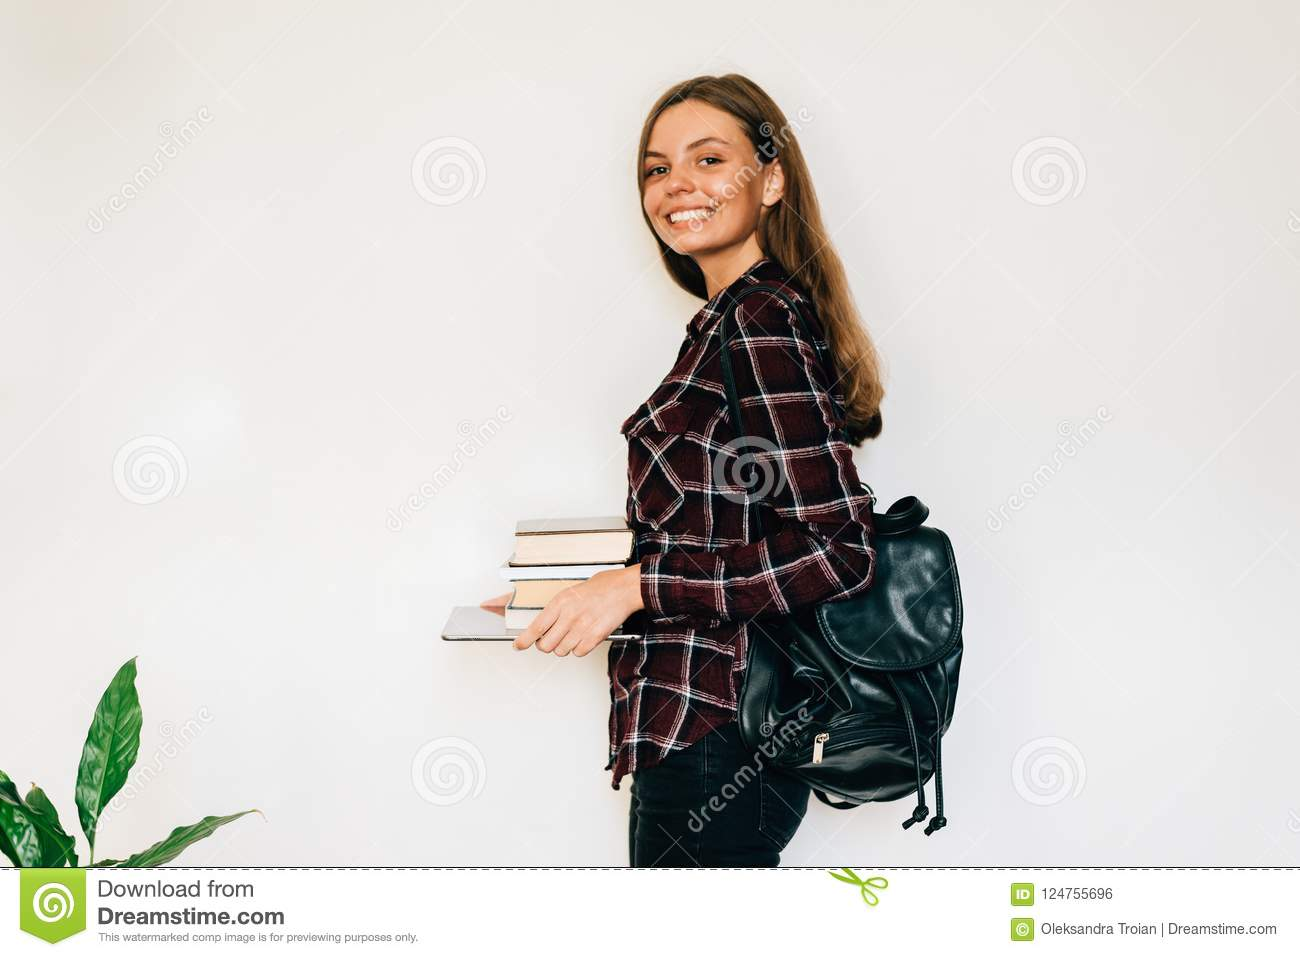 Pretty teen gild student of school or college with stack of books education